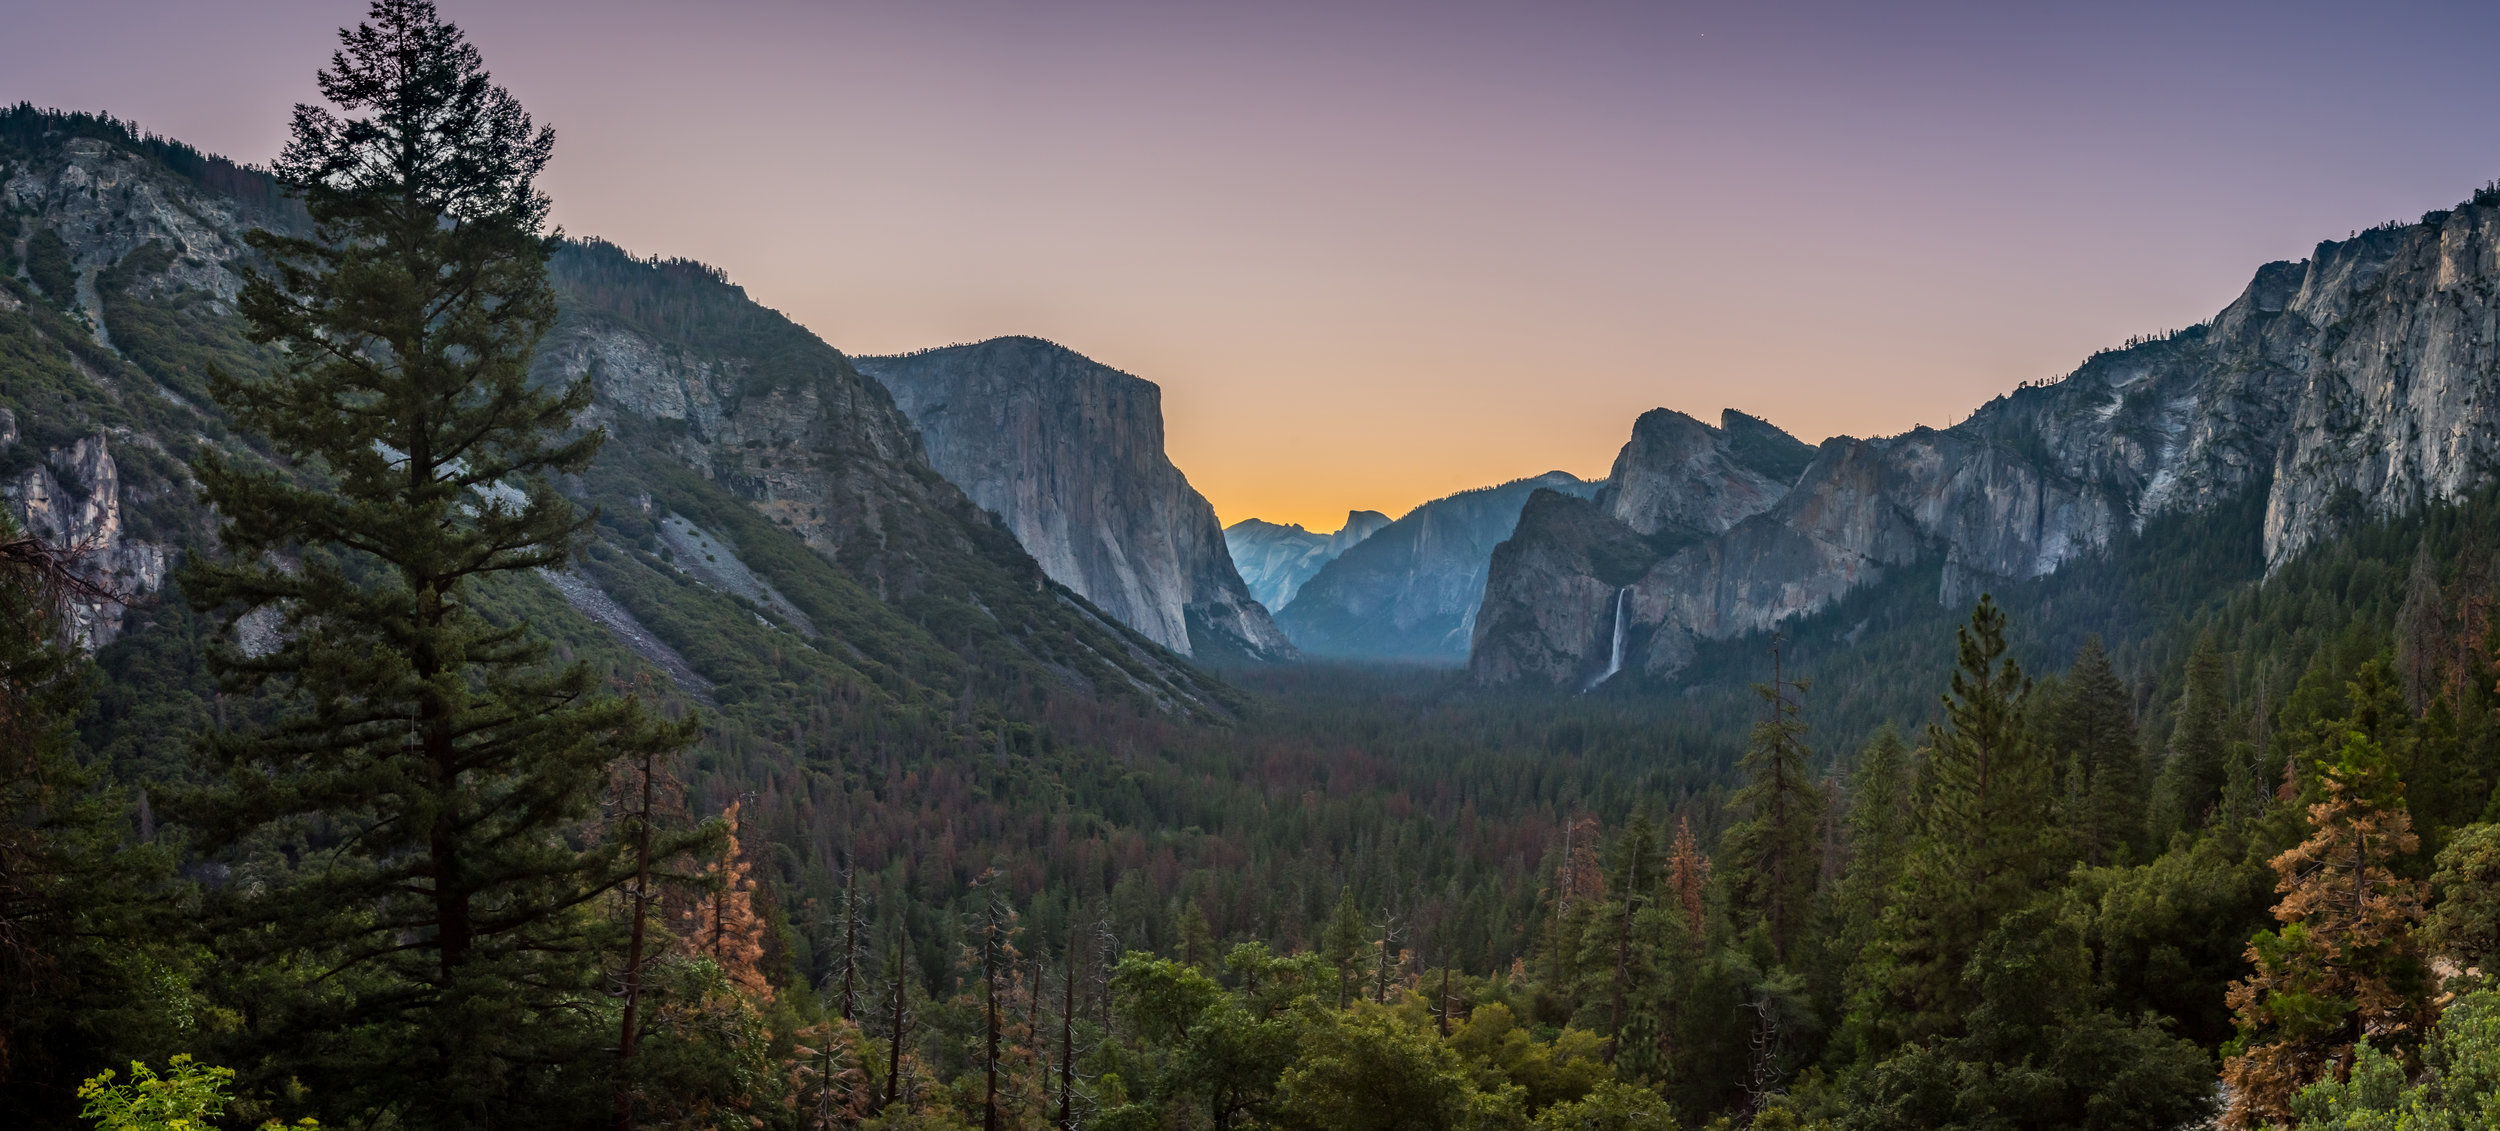 Dawn Breaks Over Tunnel View